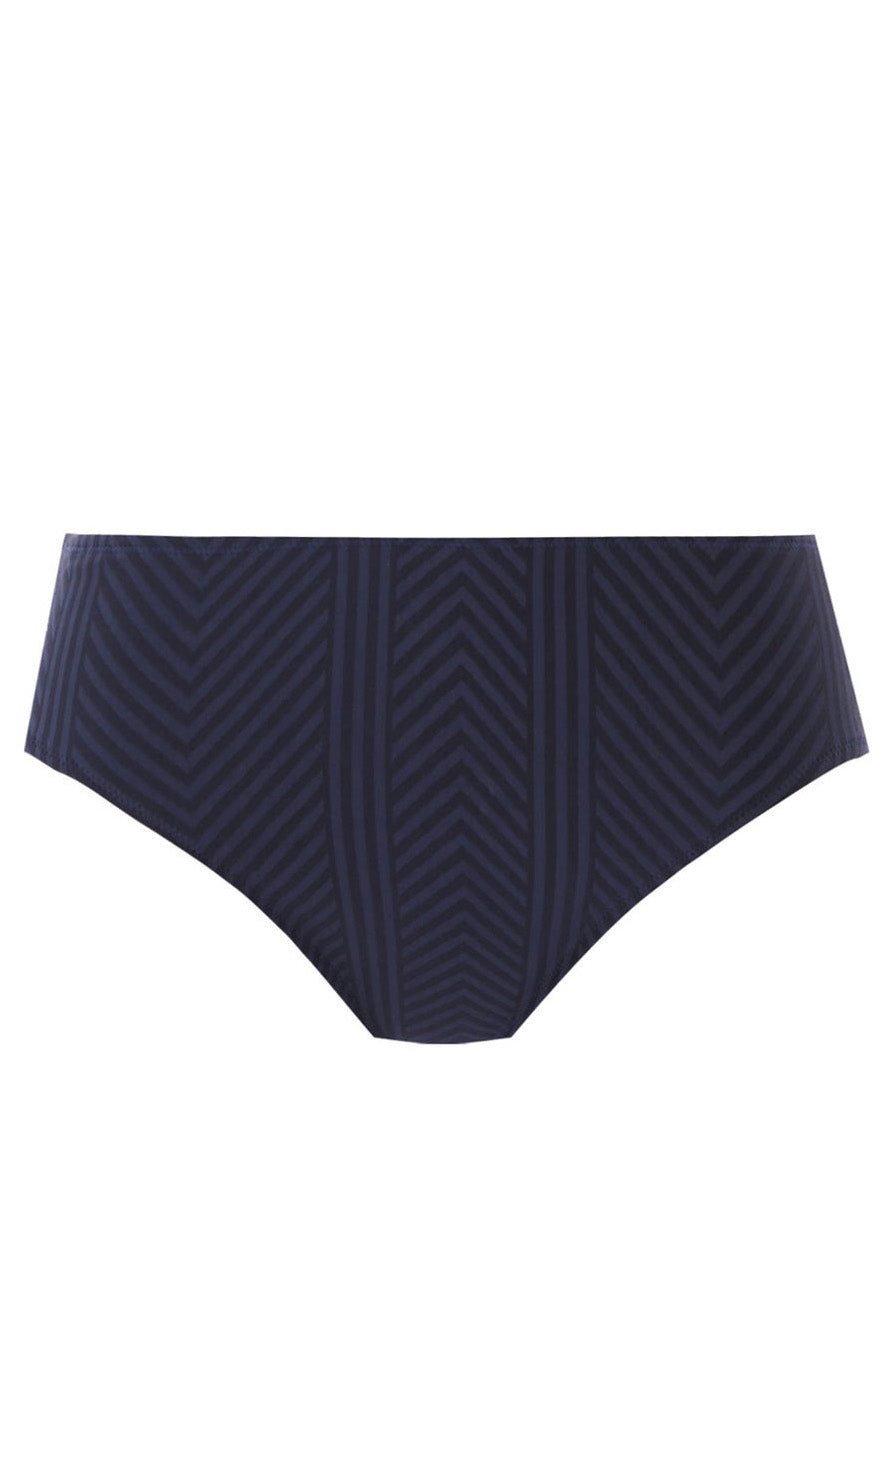 Long Island Ink Mid Rise Brief, Pre-Order XS - 2XL